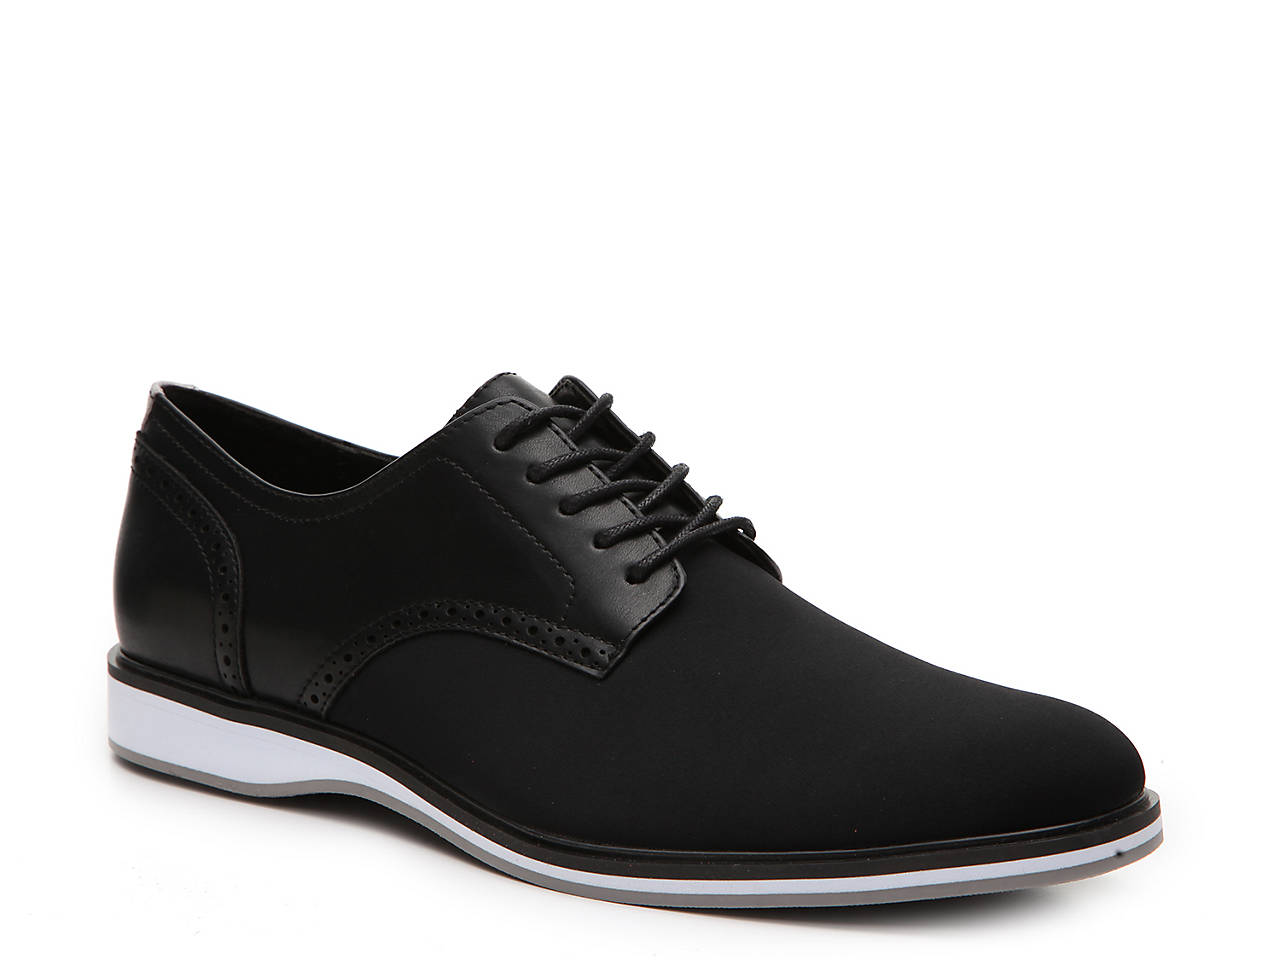 3cecfcfde6 Aldo Antor Oxford Men's Shoes | DSW